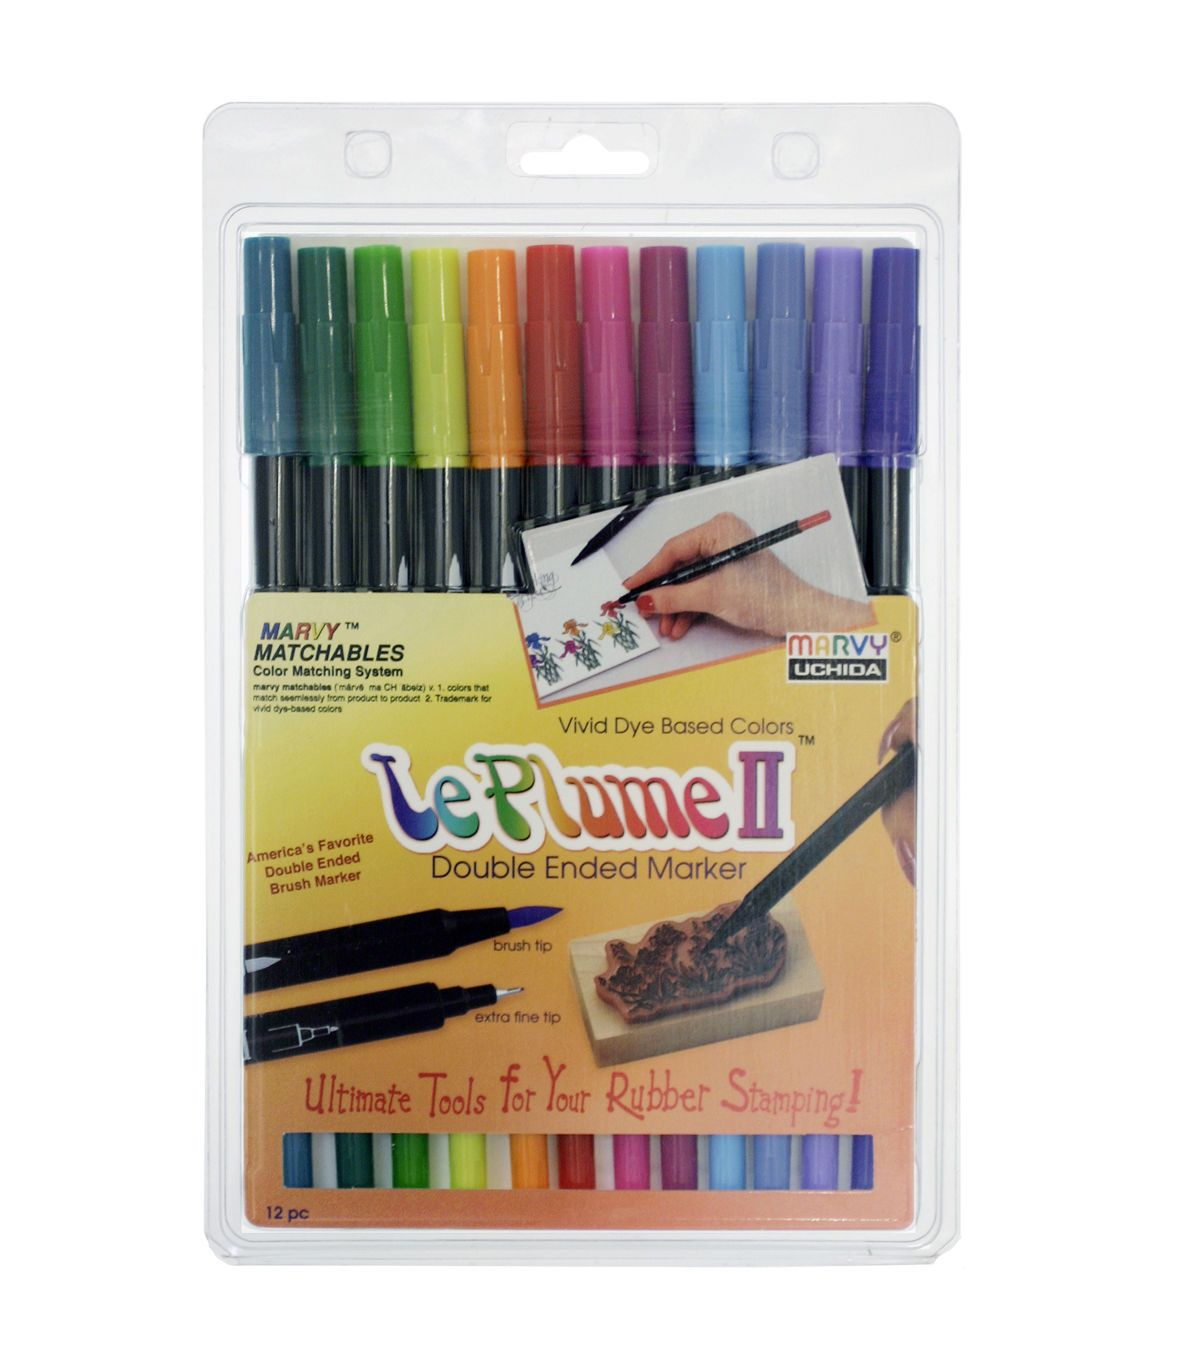 Marvy Uchida Le Plume Ii Pack Of 12 Watercolor Marker Set Bright